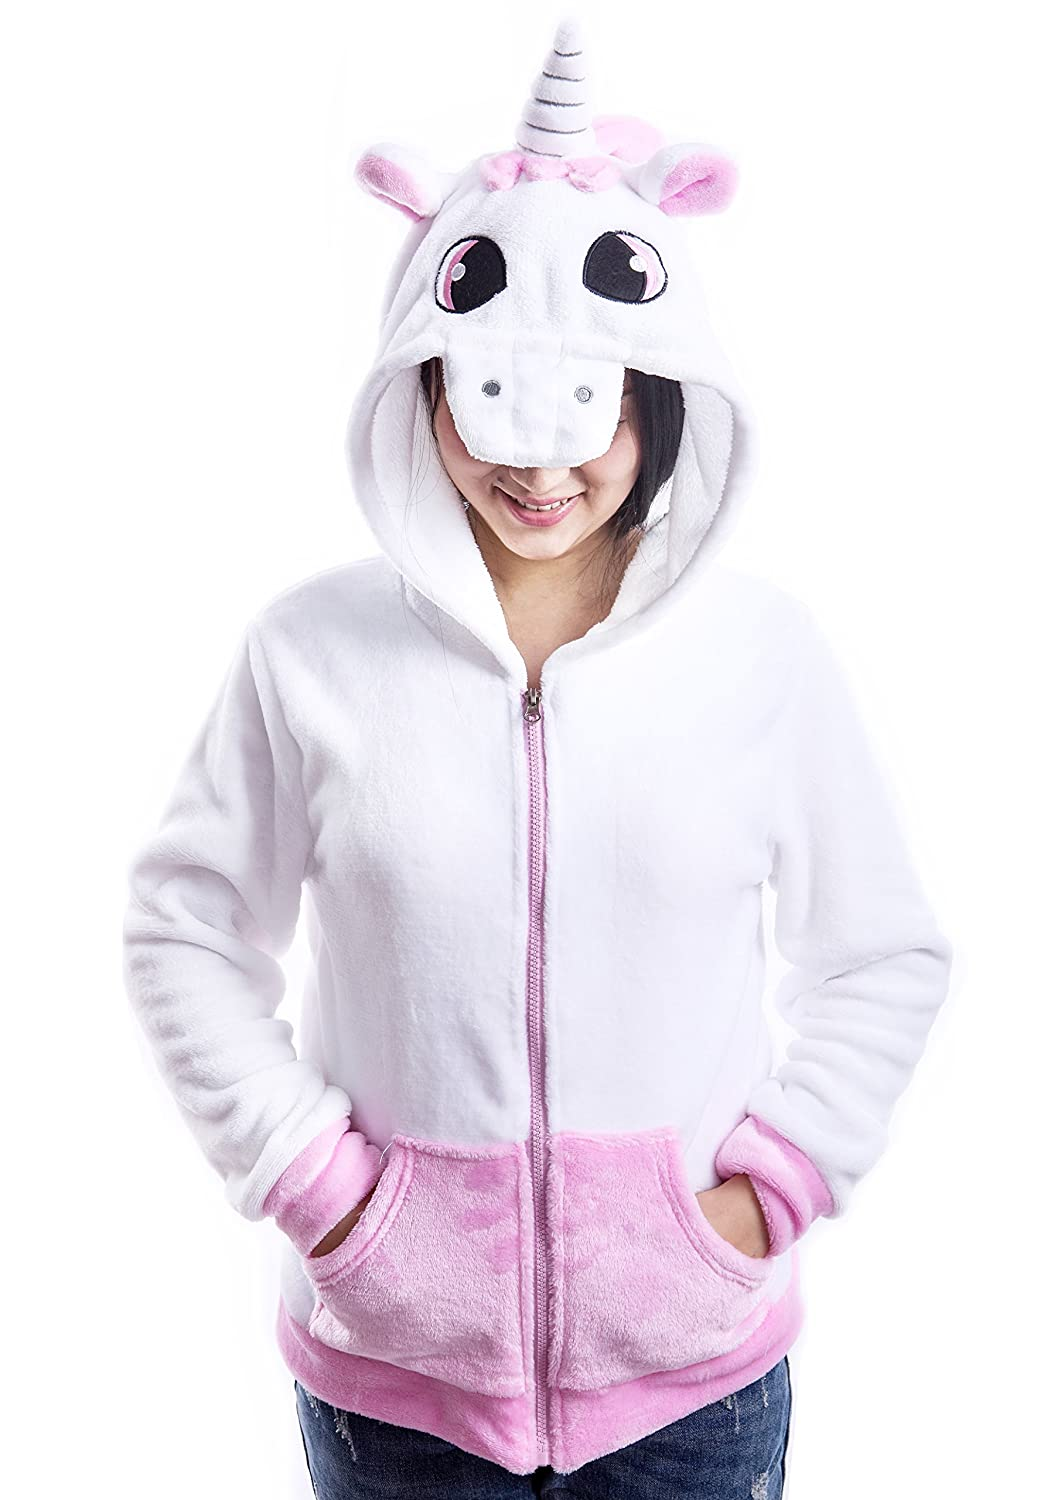 AooToo Costume Hoodies Cute Juniors Kids Cartoon Unicorn Flannel Zipper Jackets 20171006001000